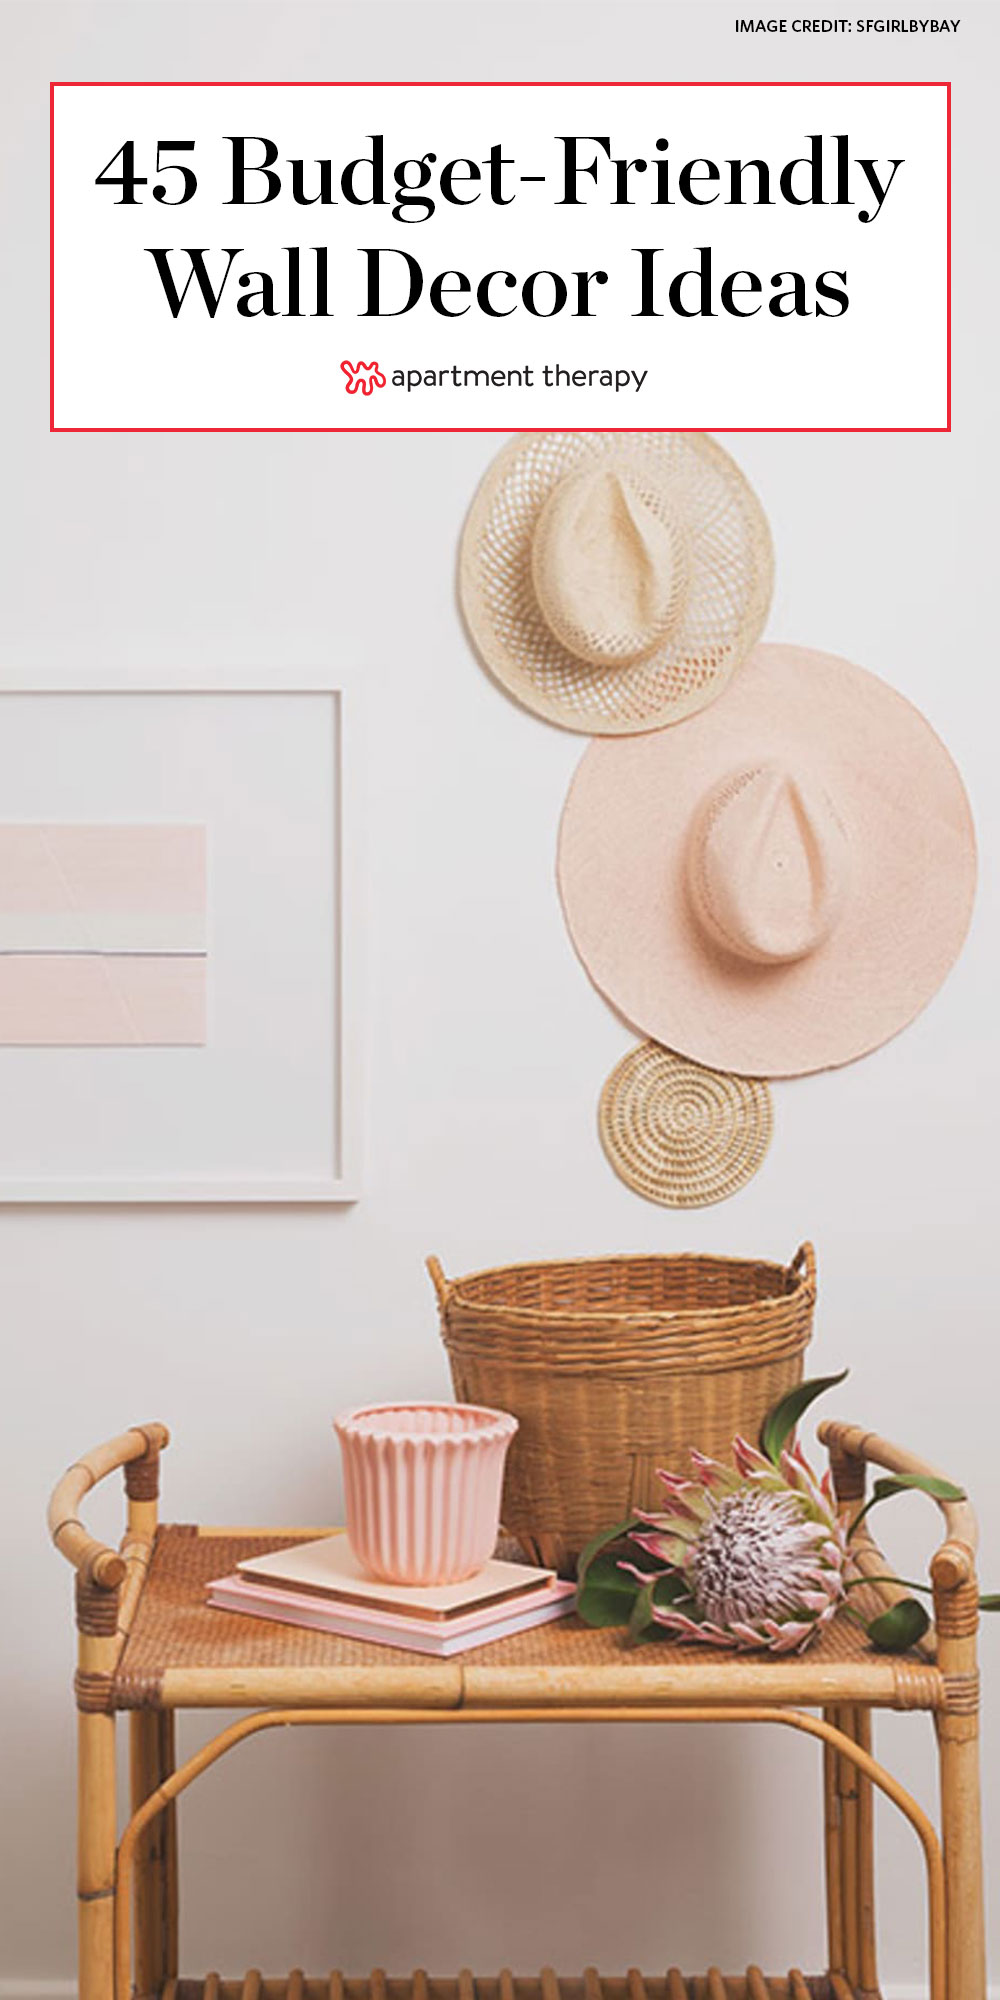 Wall Decor Ideas - 8 Things to Try at Home | Apartment Therapy